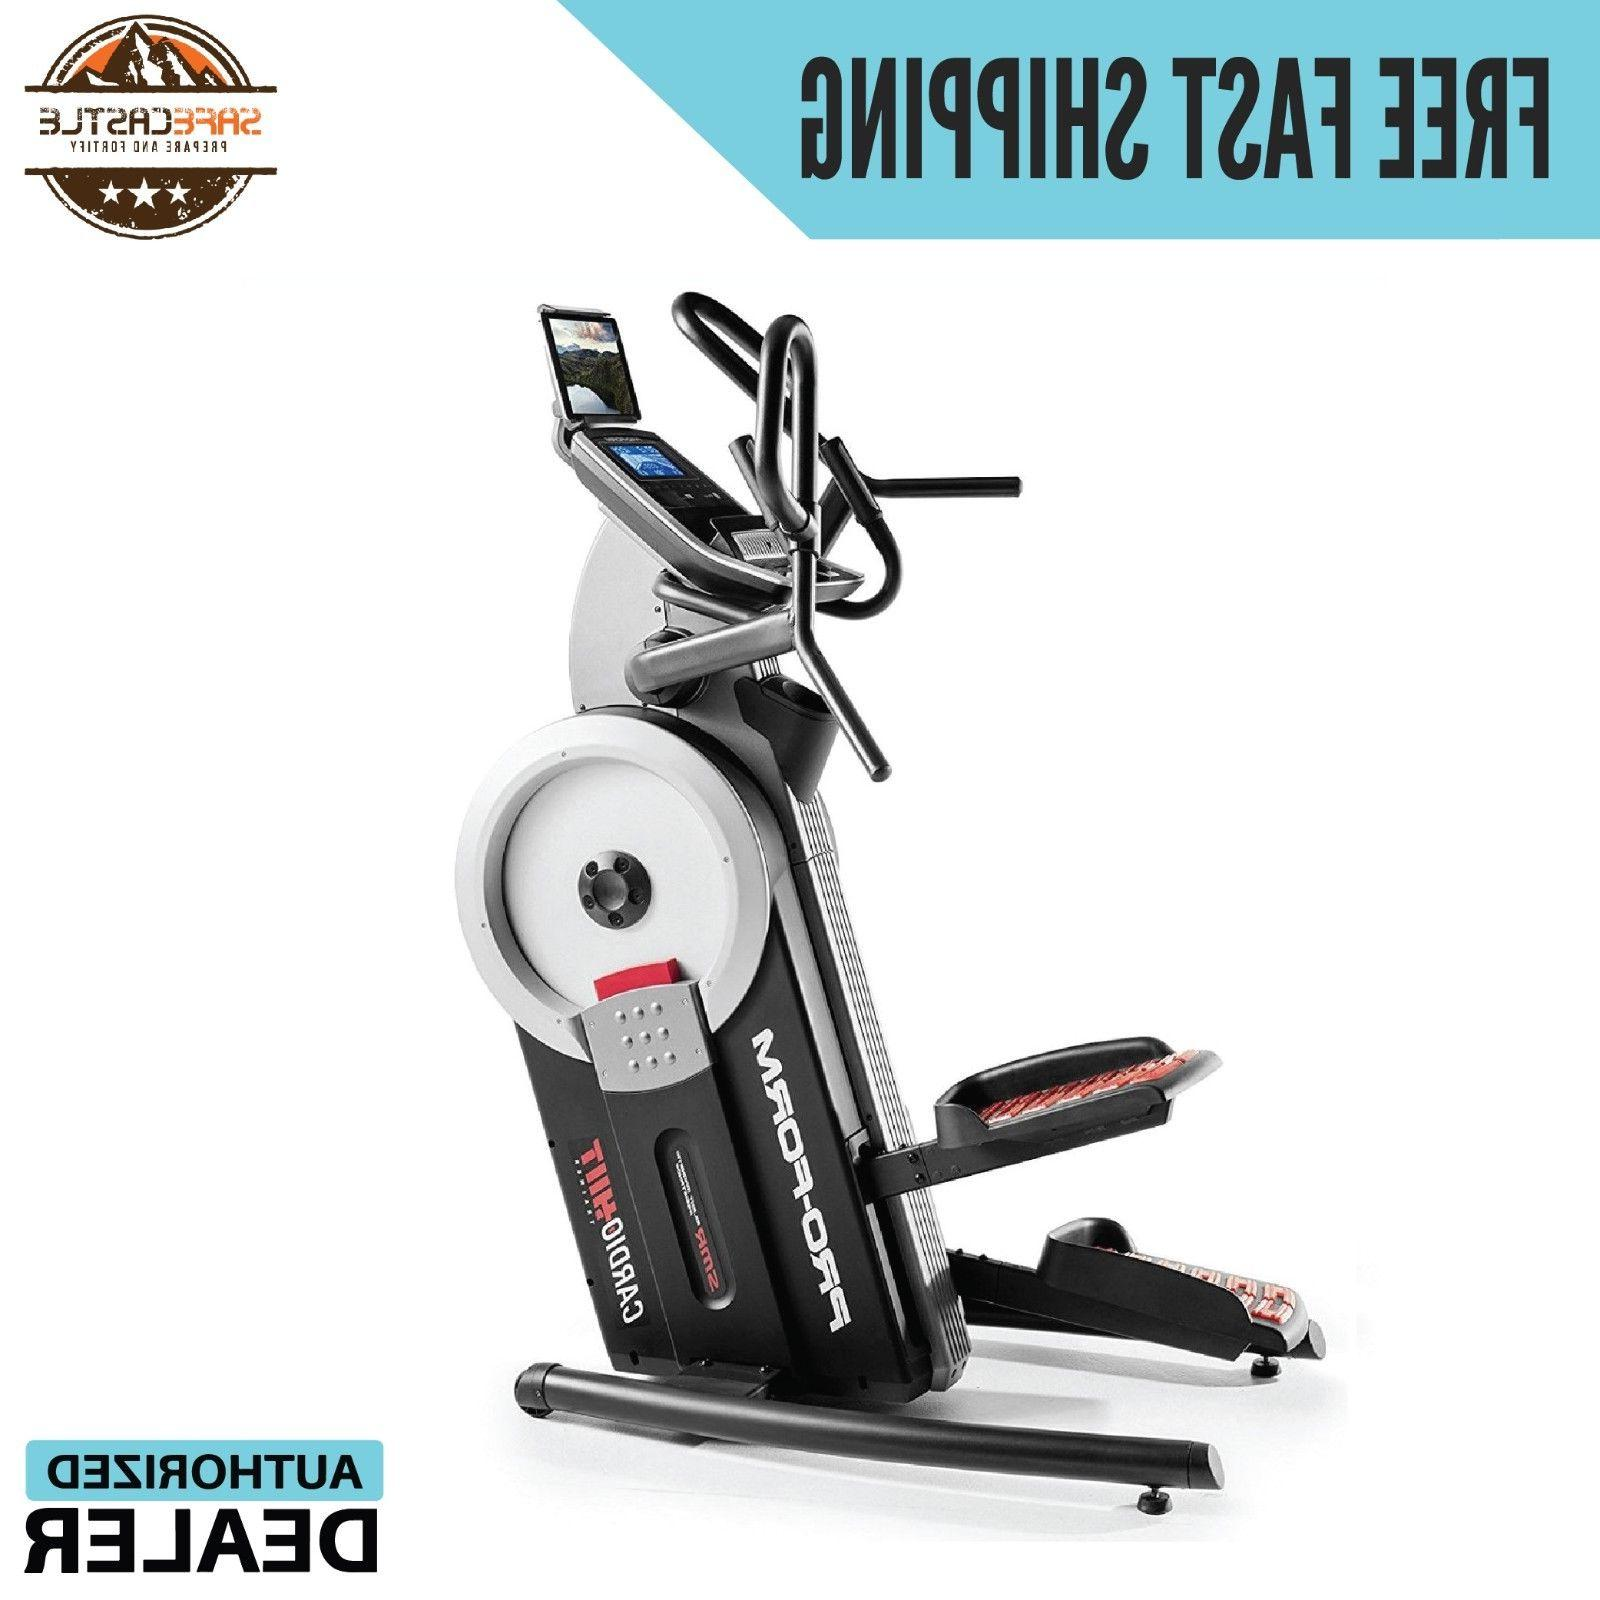 ProForm Workout Machine- PFEL09915, Delivery